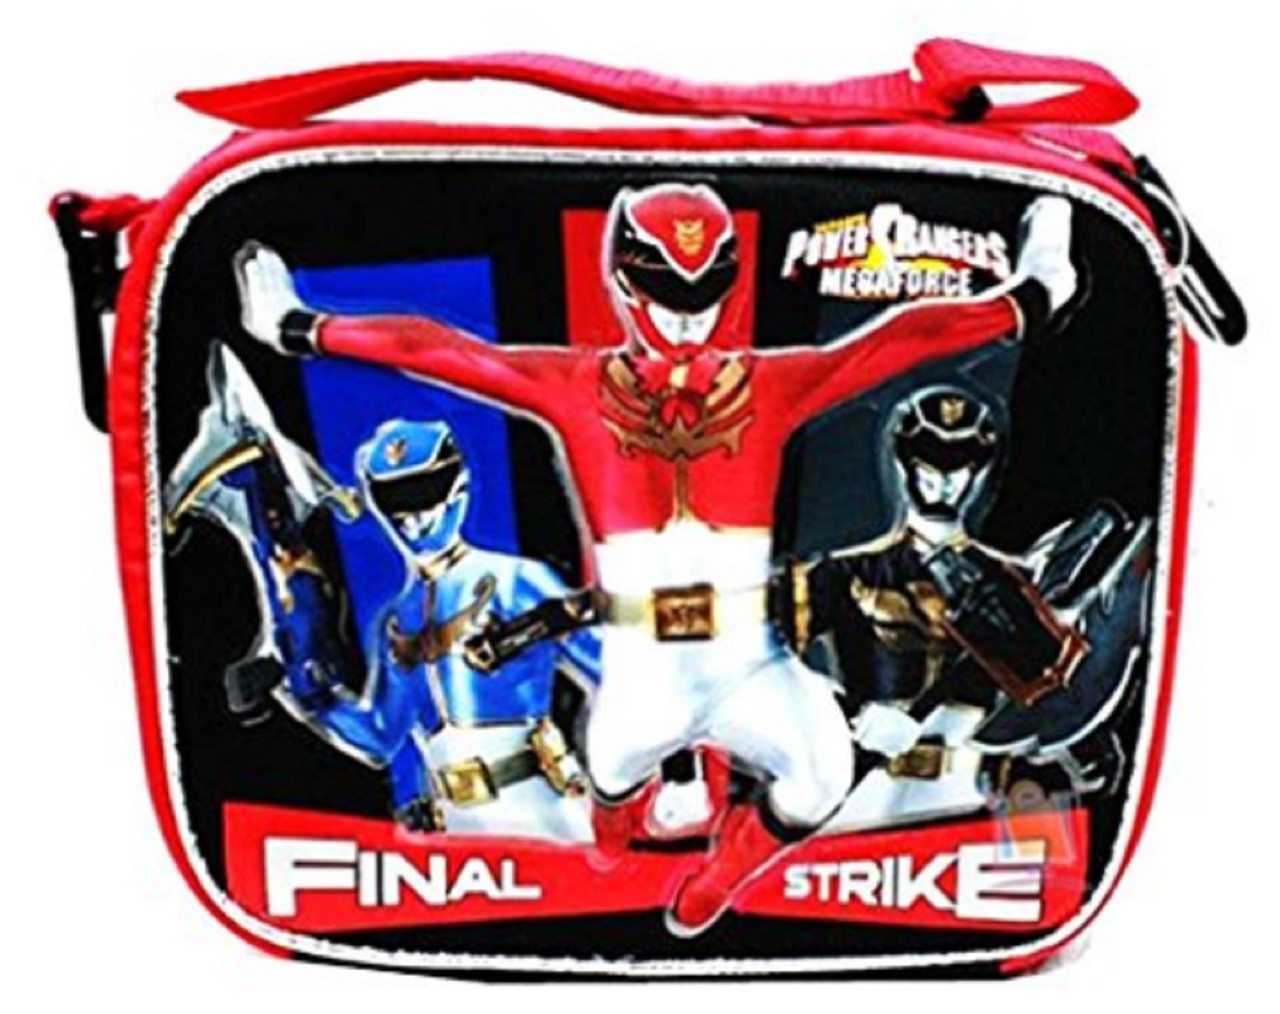 Power Rangers Megaforce Cloth Insulated Fabric Lunch Box